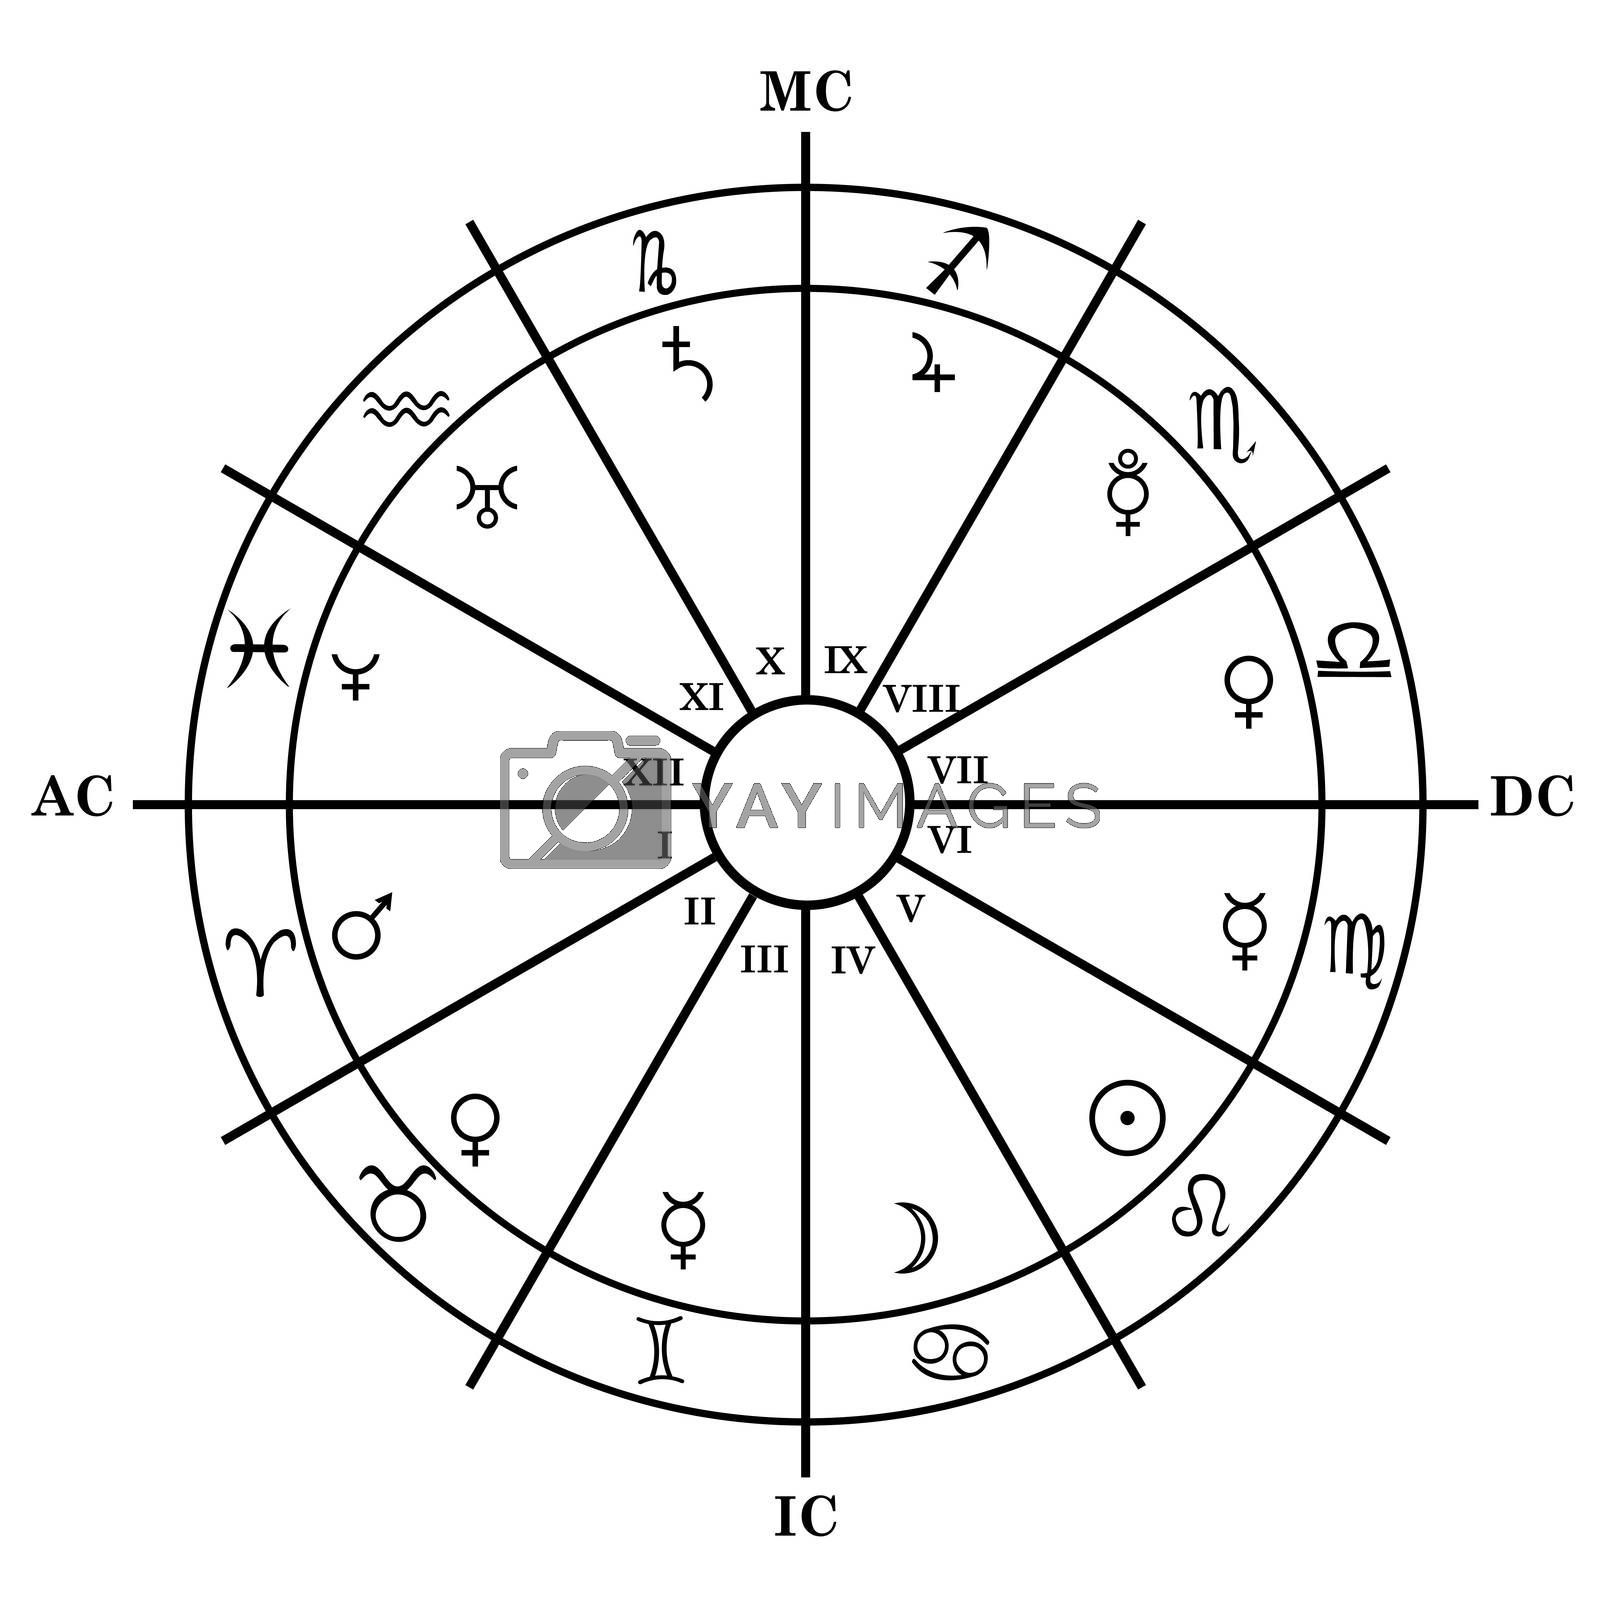 Astrology Zodiac With Natal Chart Zodiac Signs Houses And Plan Royalty Free Stock Image Yayimages Royalty Free Stock Photos And Vectors